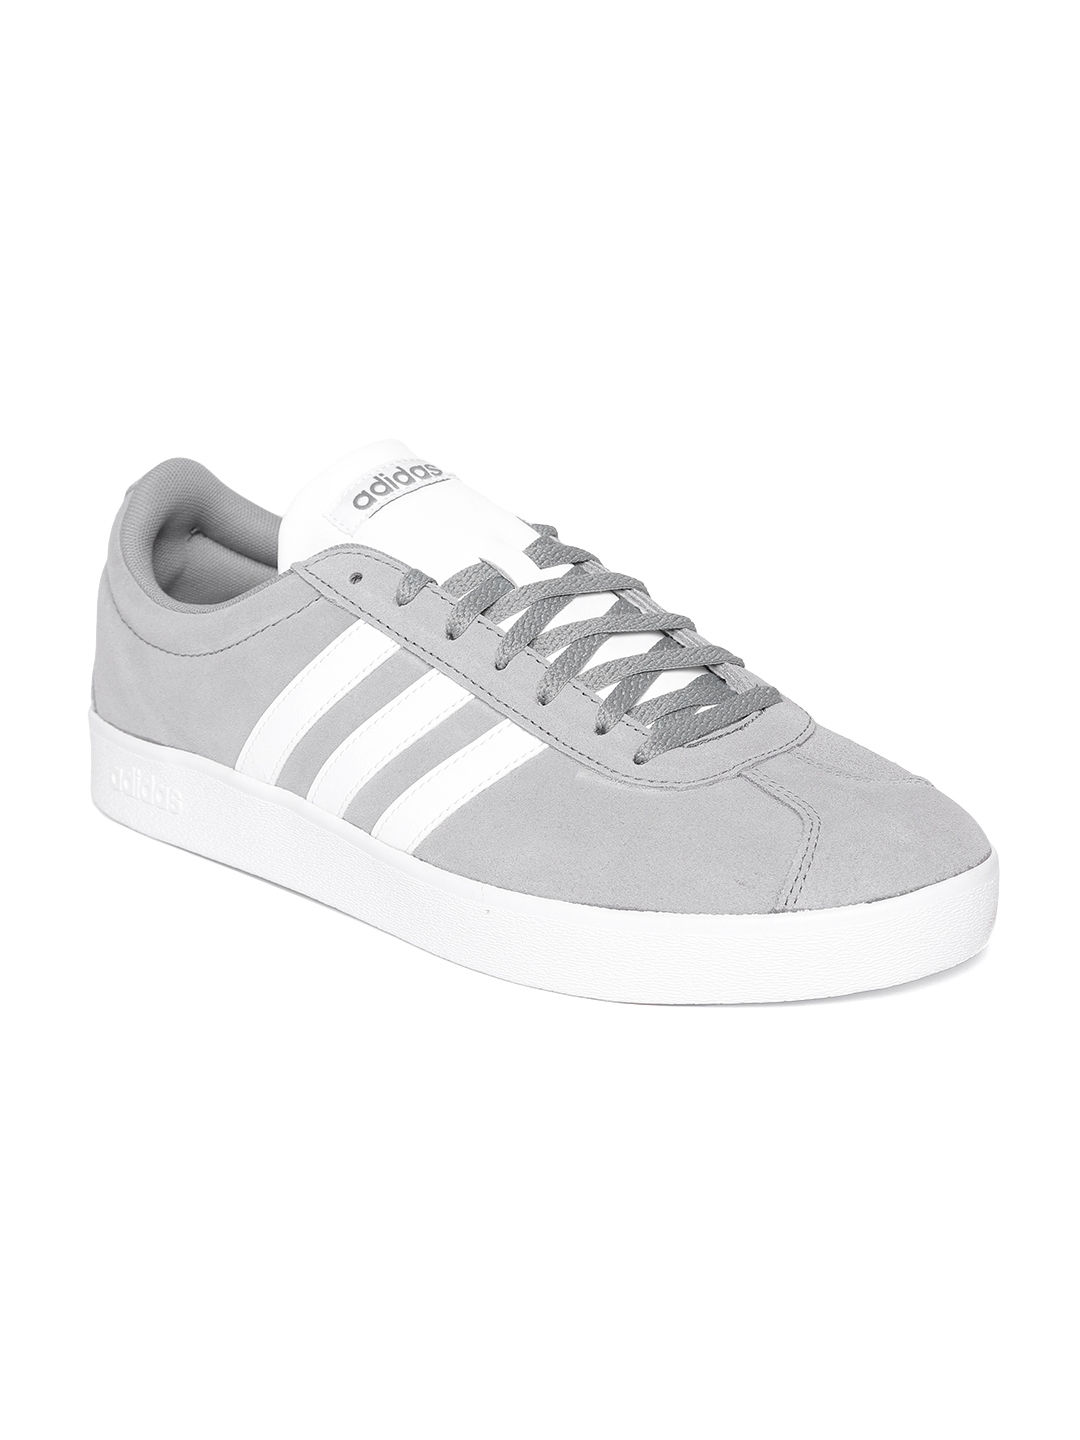 22fd4ce6cd99 Buy ADIDAS Originals Men Grey VL Court 2.0 Suede Skateboarding Shoes ...